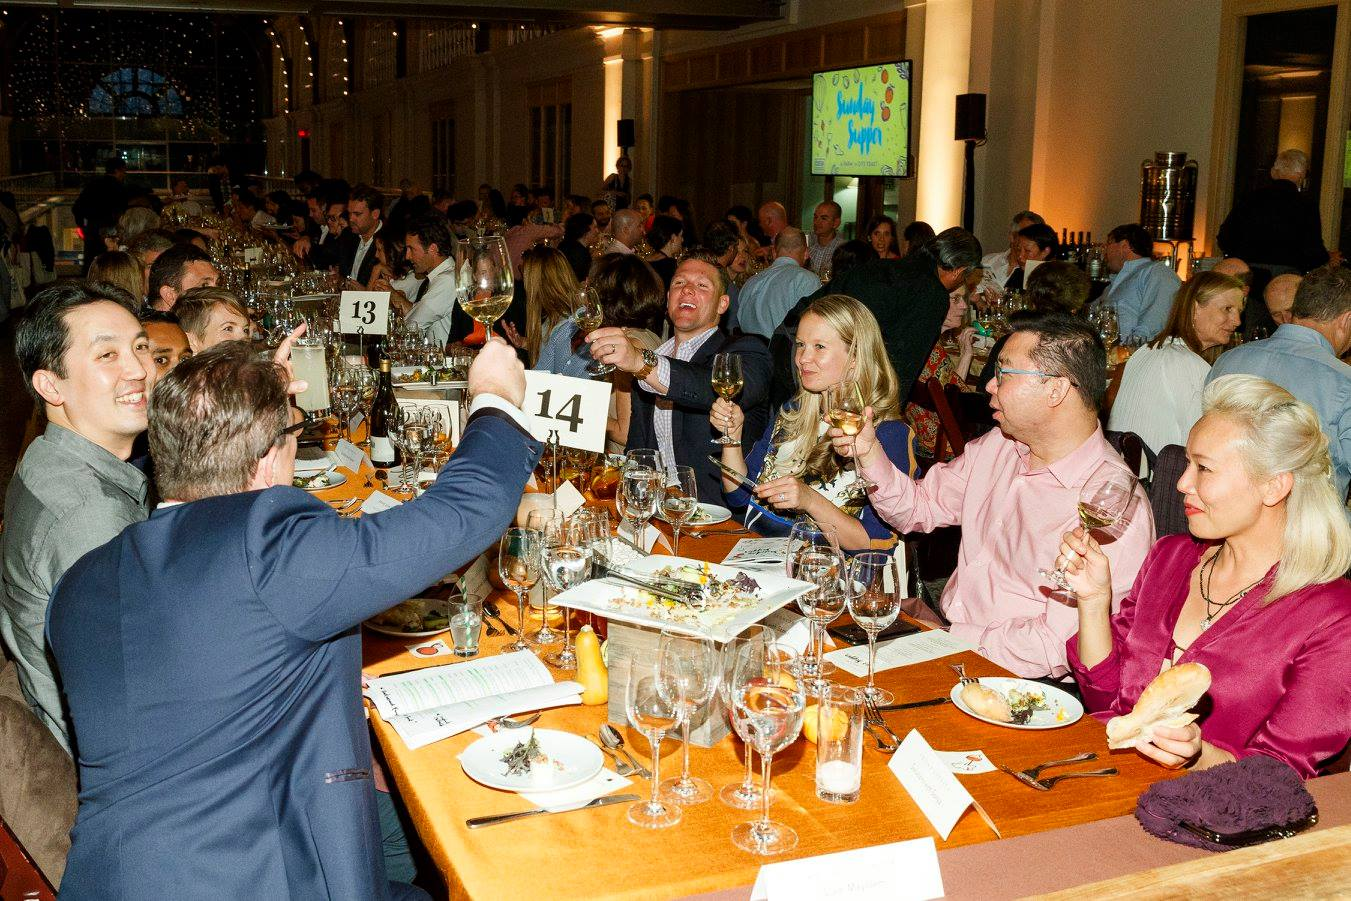 My (very fun!) table at the fundraiser.